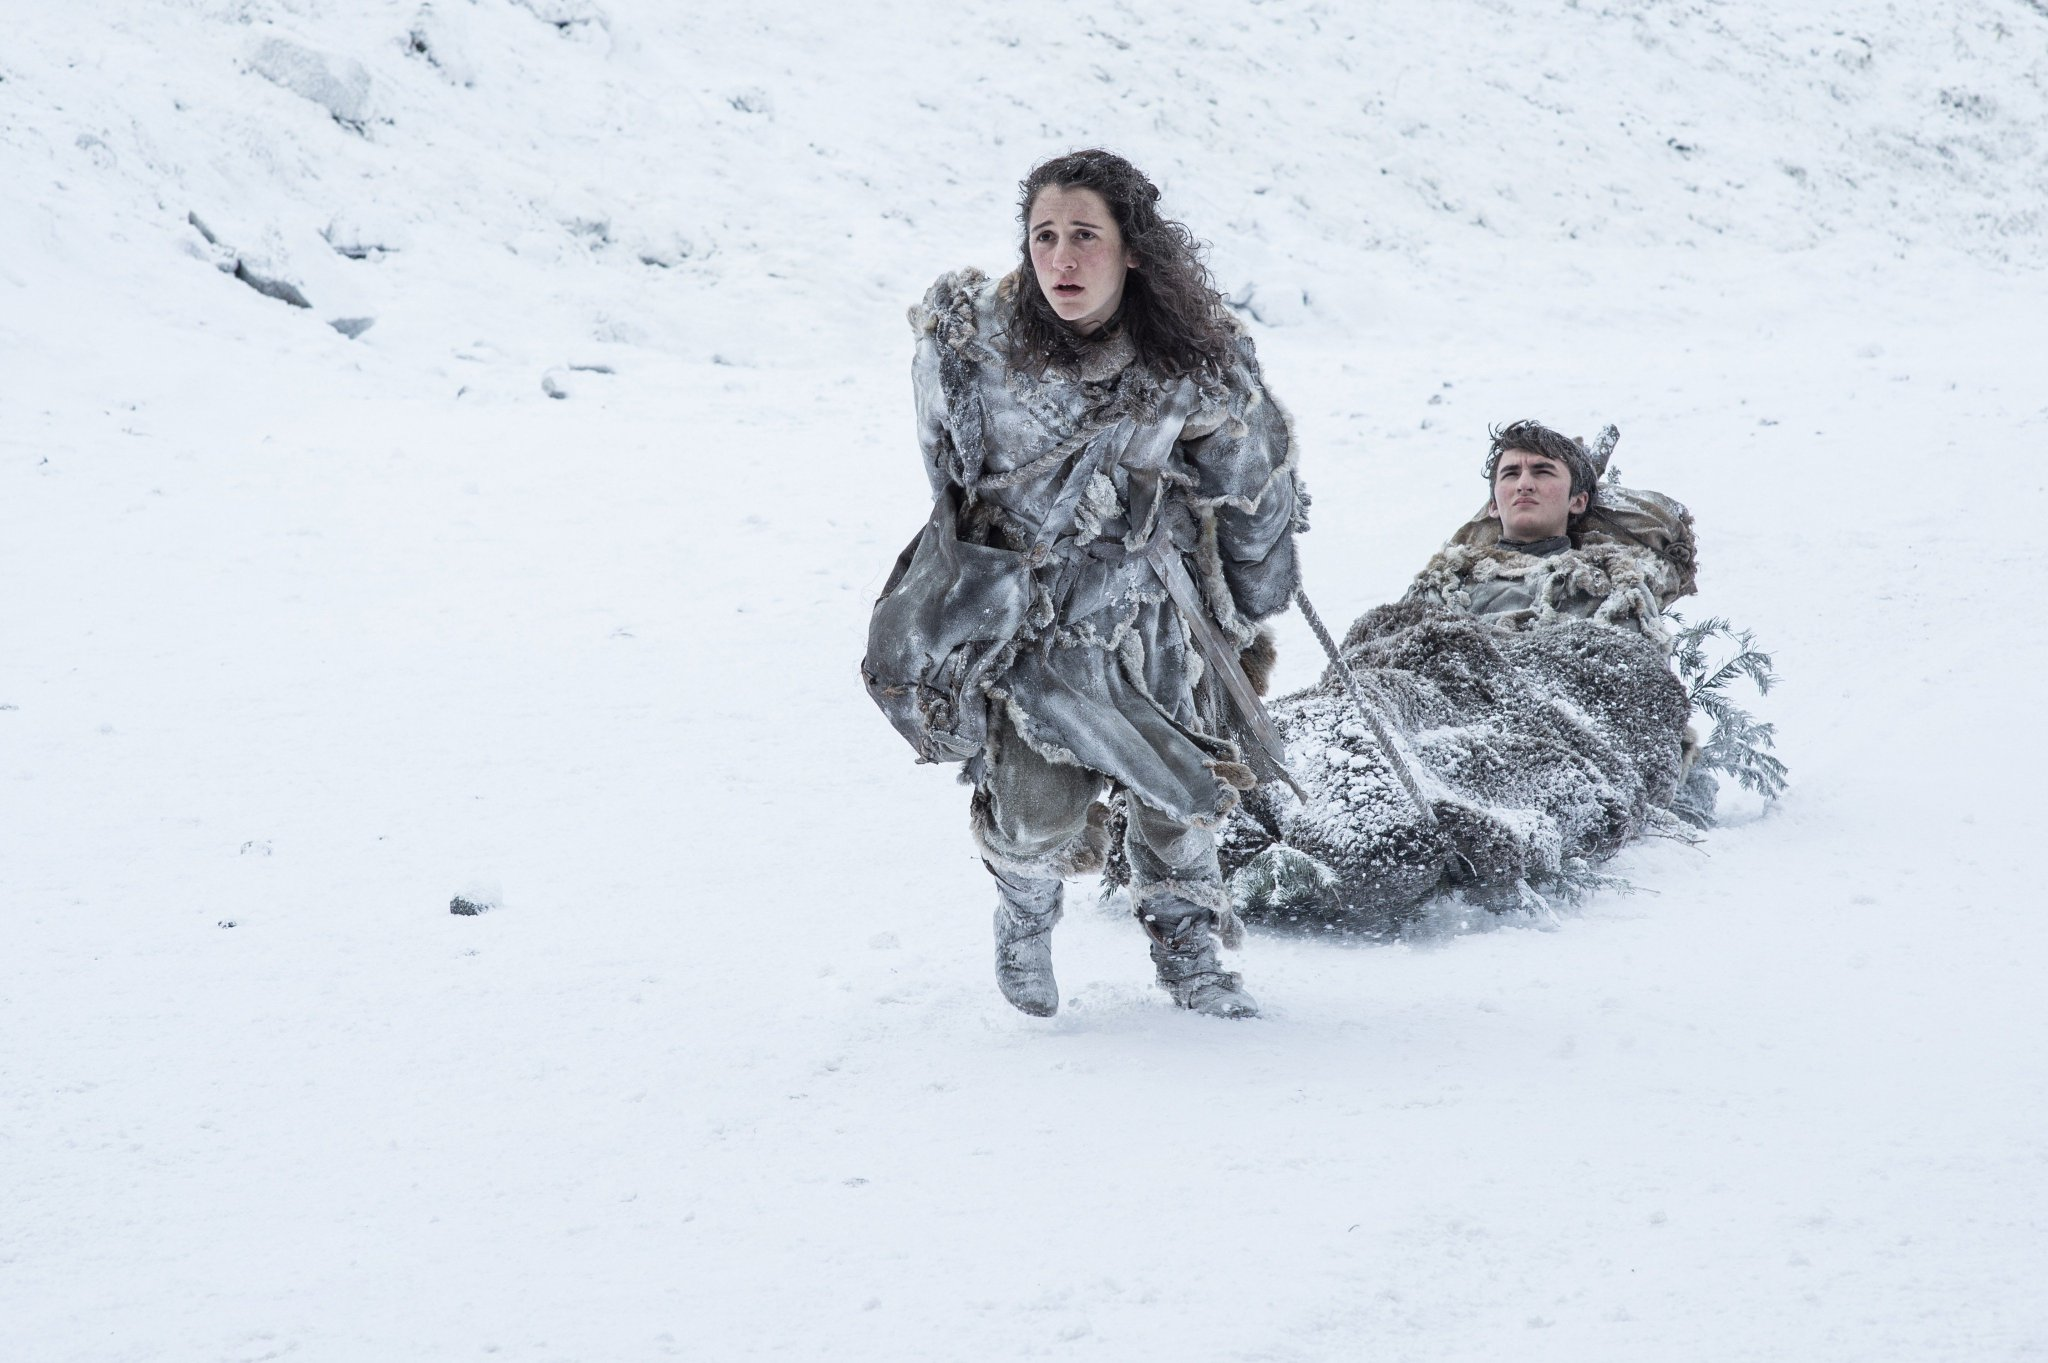 Ellie Kendrick as Meera Reed and @Issac_H_Wright as Bran Stark. #GoTS7 #GameofThrones (Photo Helen: Sloan/HBO) https://t.co/DqmNvpn1Pn